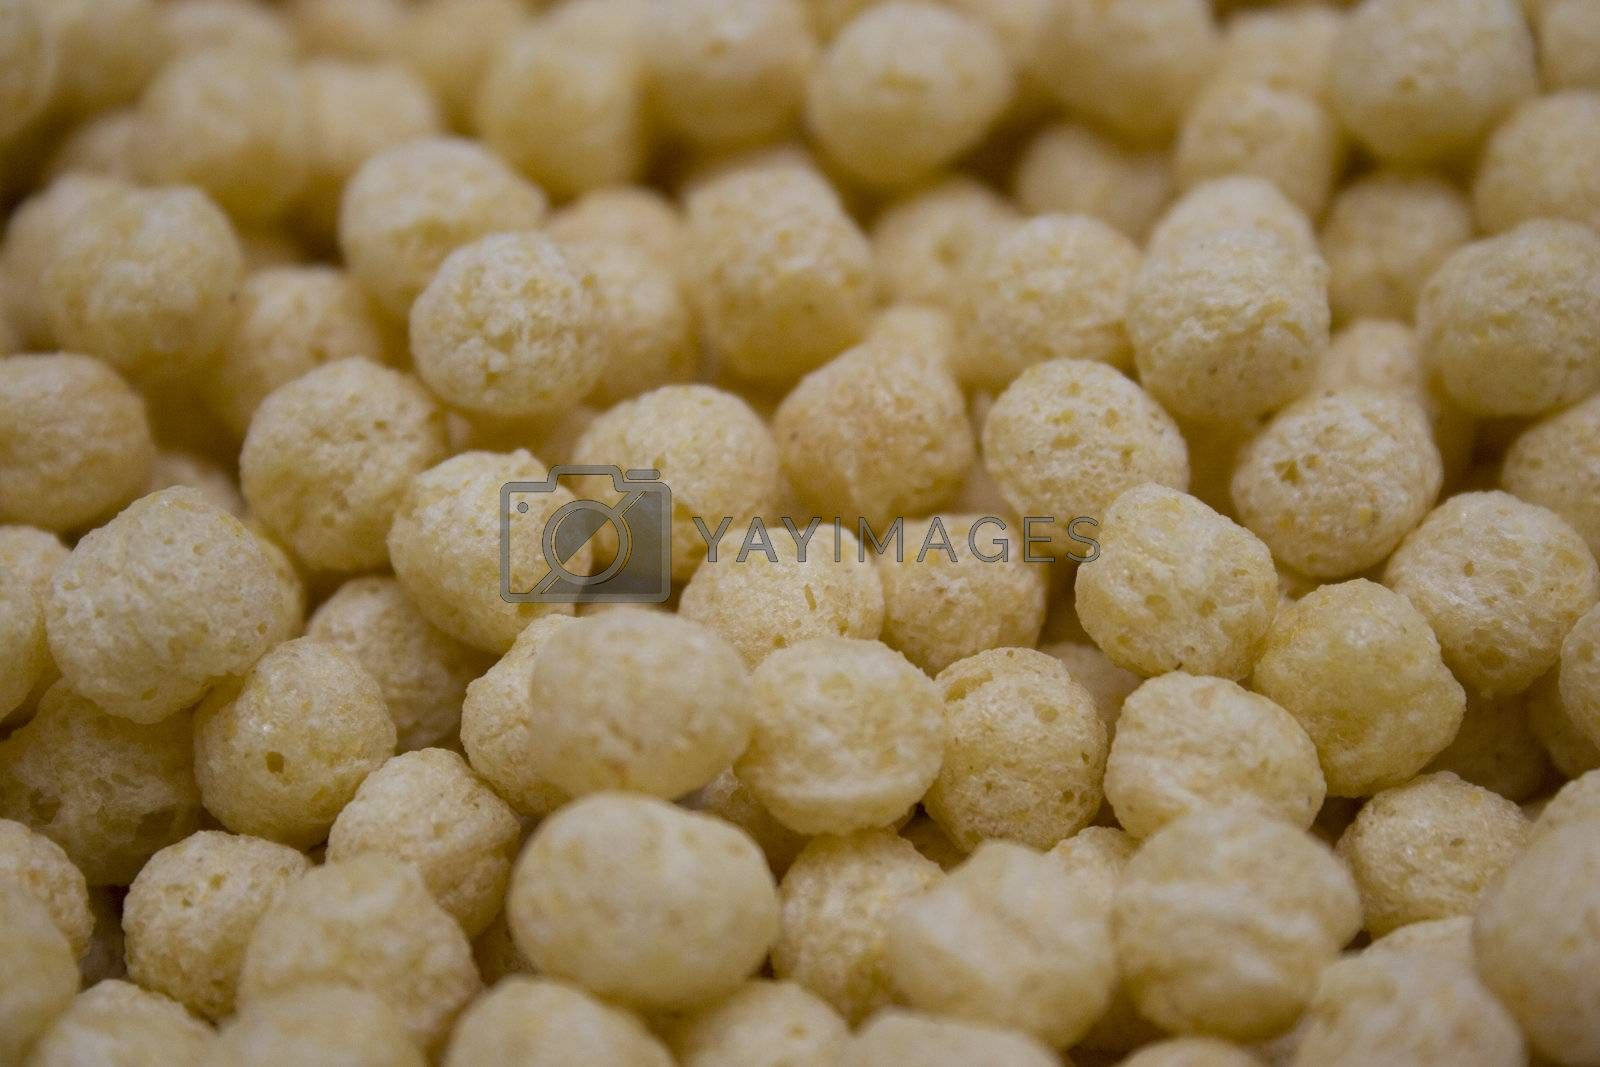 A close up shot of a bowl of puffed grain cereal.